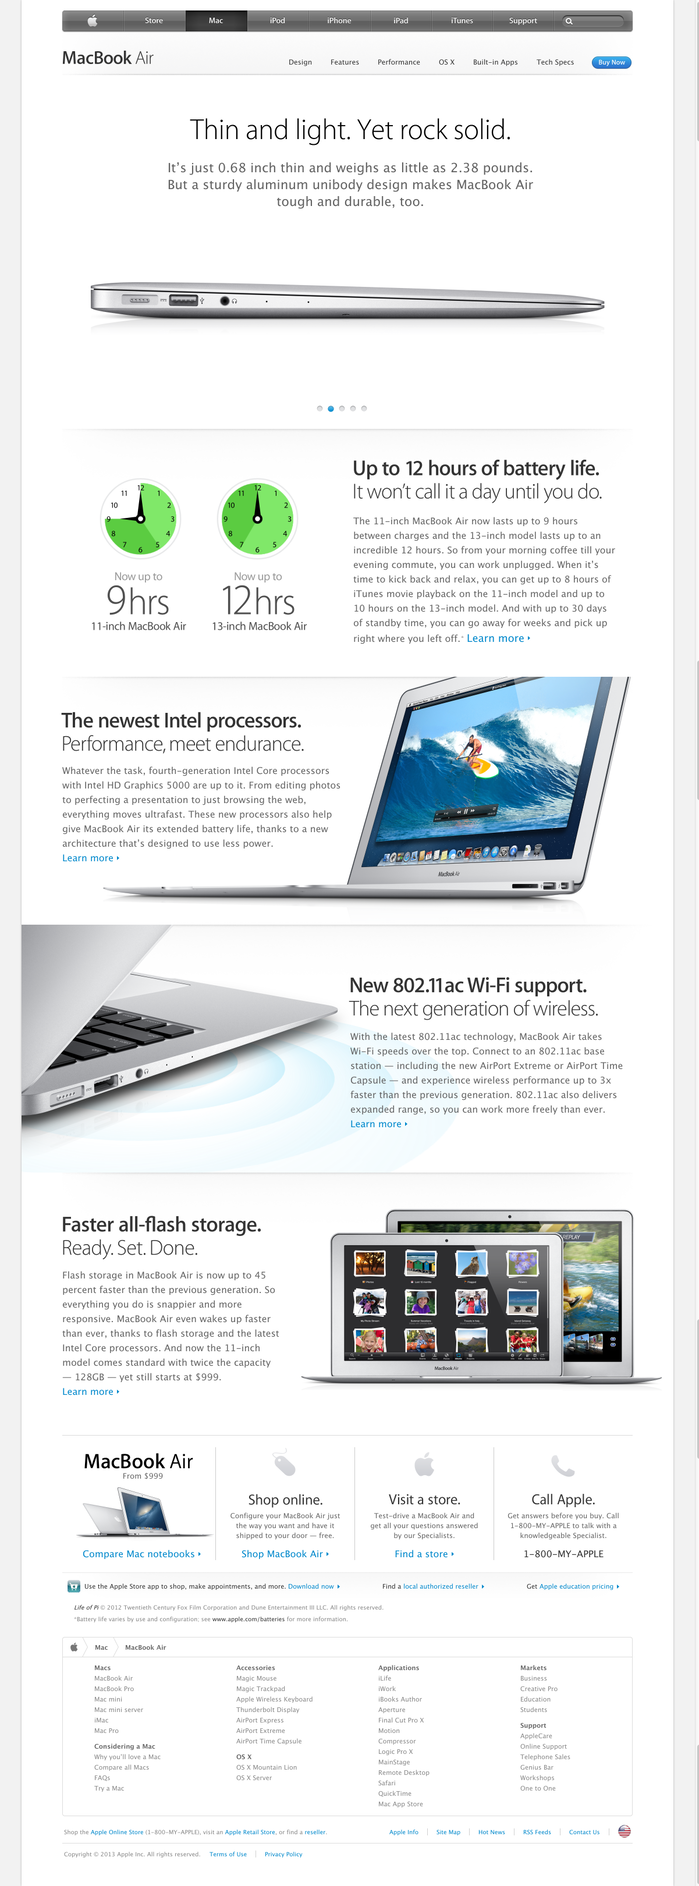 """Apple sometimes uses an ultra thin weight of Myriad that is lighter than anything commercially available. I suppose they had one custom made to emphasize the """"weightlessness"""" of the MacBook Air. This style of Myriad is also used elsewhere on Apple.com."""